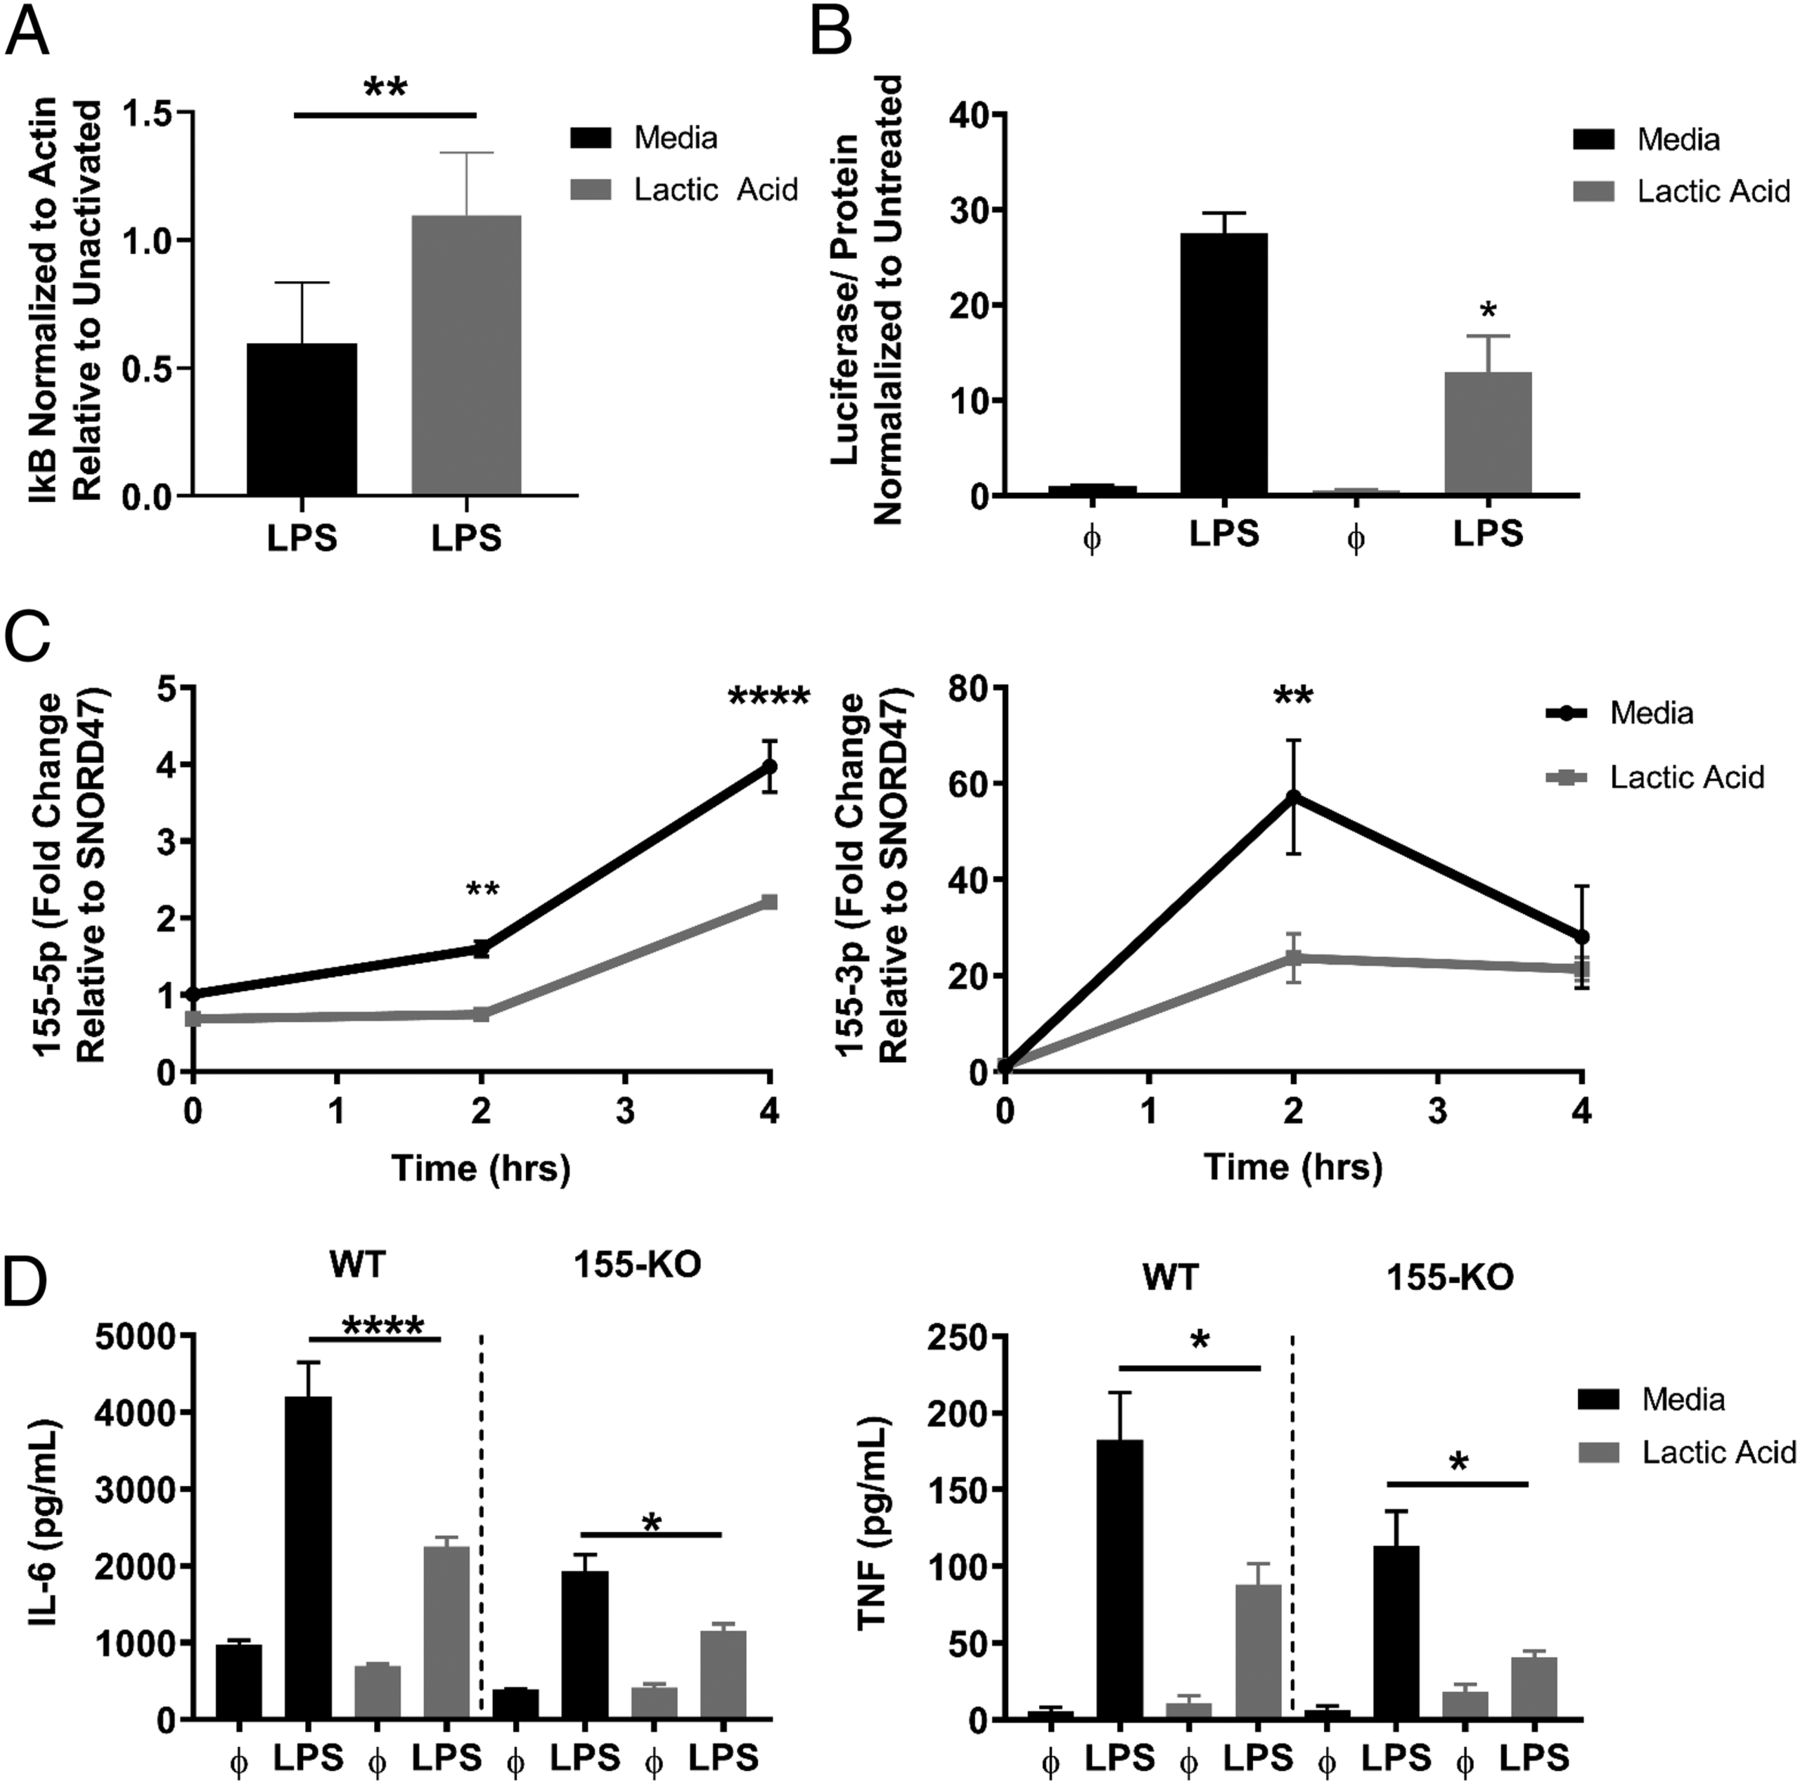 Lactic Acid Inhibits Lipopolysaccharide-Induced Mast Cell Function